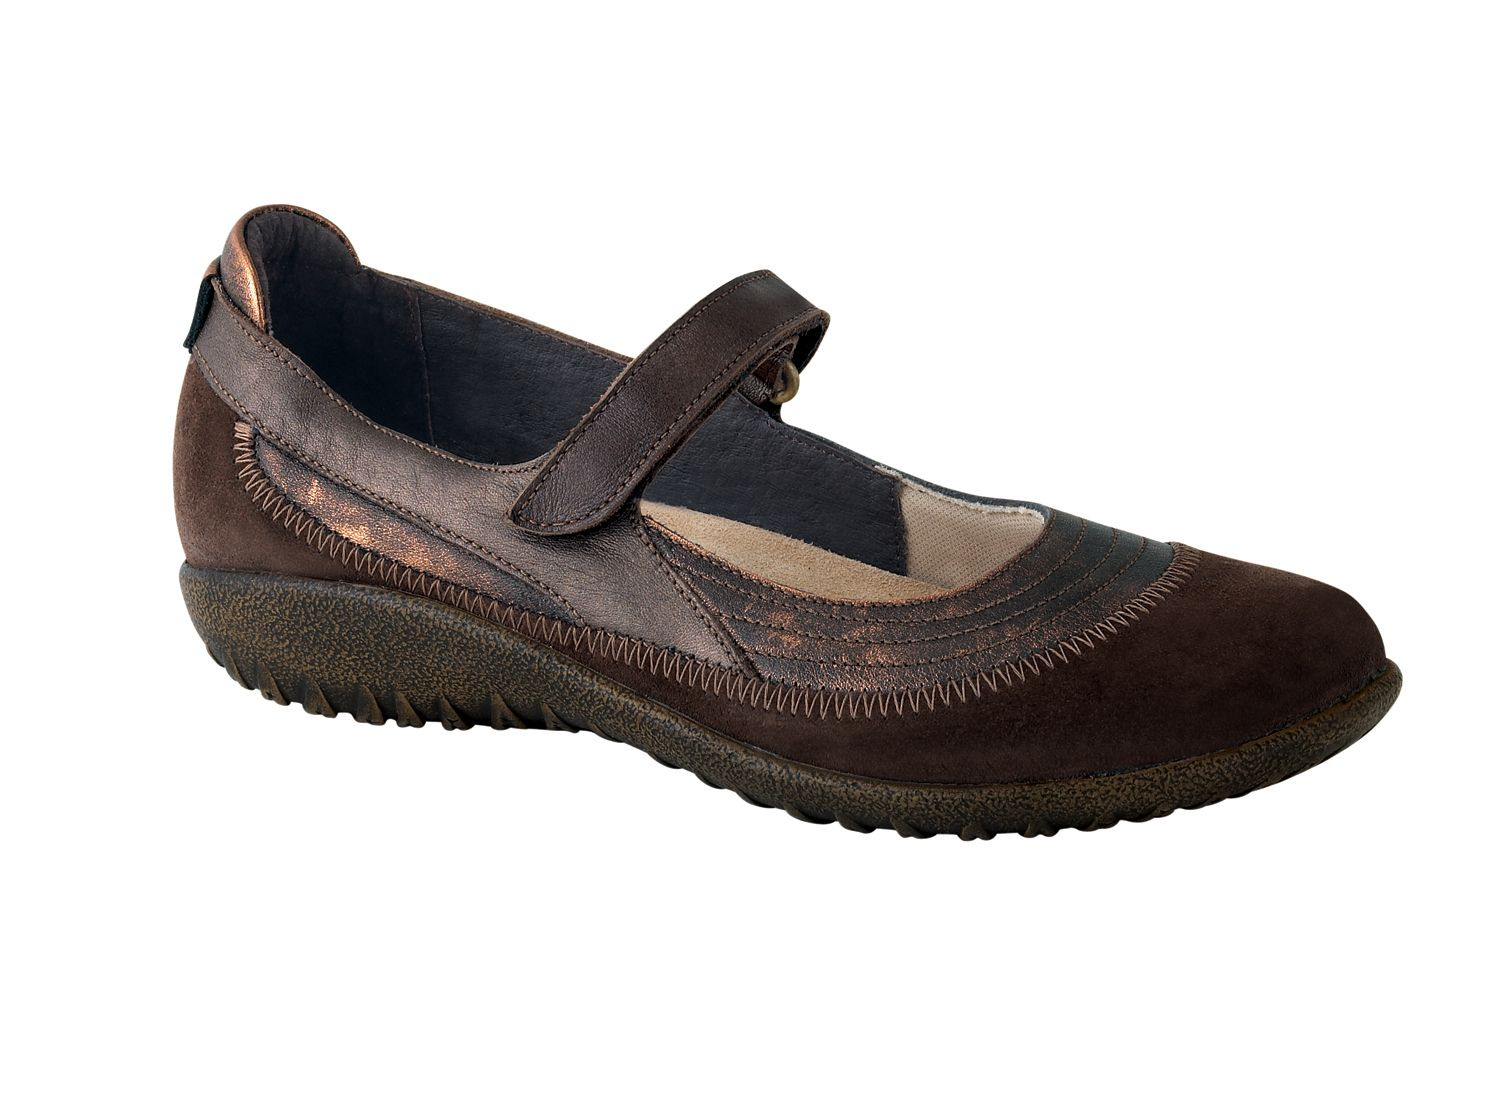 Women's Naot Sandals - The Walking Company